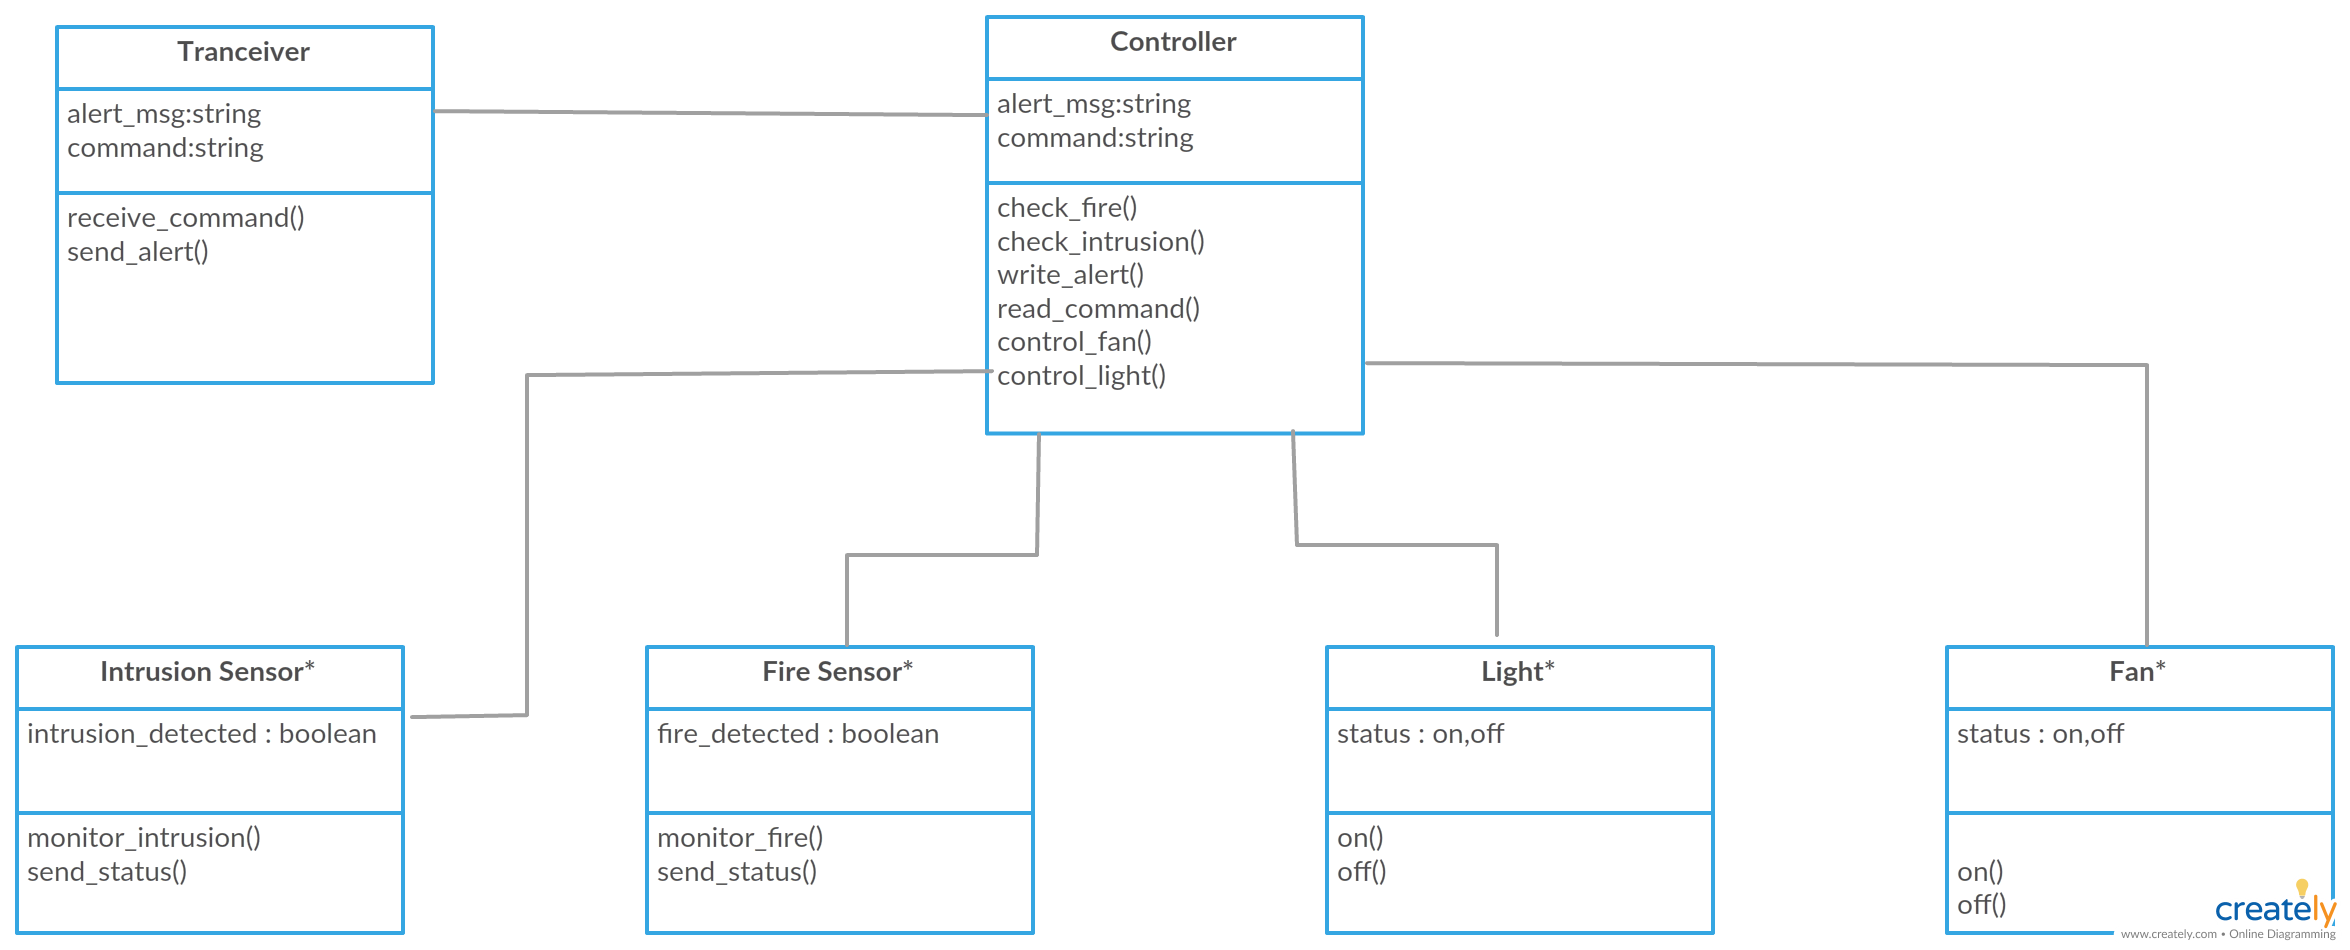 medium resolution of uml class diagrams for home automation system you can edit this template and create your own